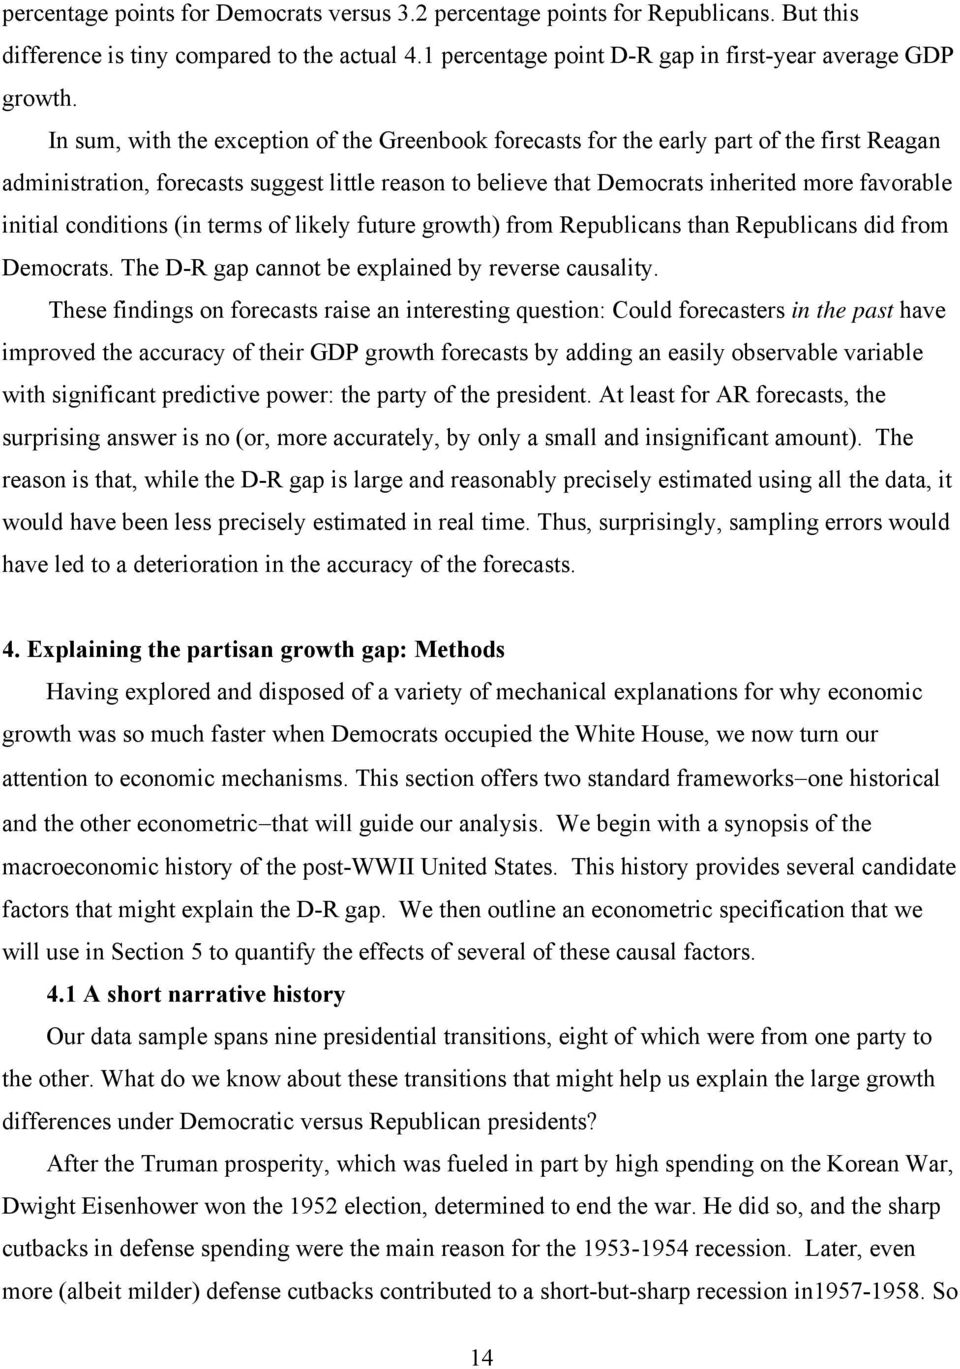 conditions (in terms of likely future growth) from Republicans than Republicans did from Democrats. The D-R gap cannot be explained by reverse causality.